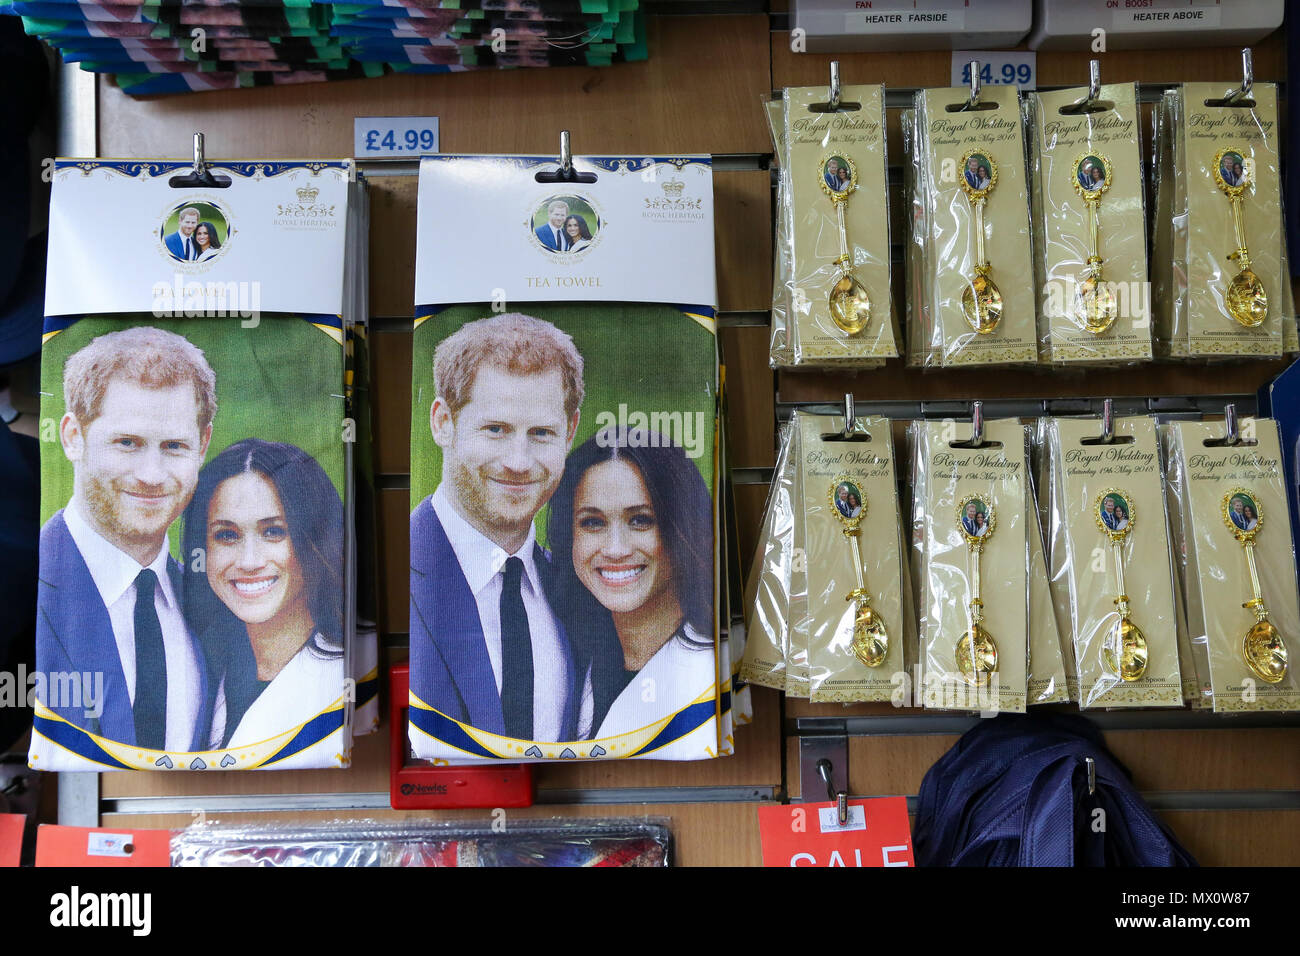 A large selection of memorabilia available in a souvenir shop in Piccadilly Circus to commemorate the wedding of Prince Harry and Meghan Markle on 19 May 2018.  Featuring: Atmosphere, View Where: London, United Kingdom When: 02 May 2018 Credit: Dinendra Haria/WENN Stock Photo